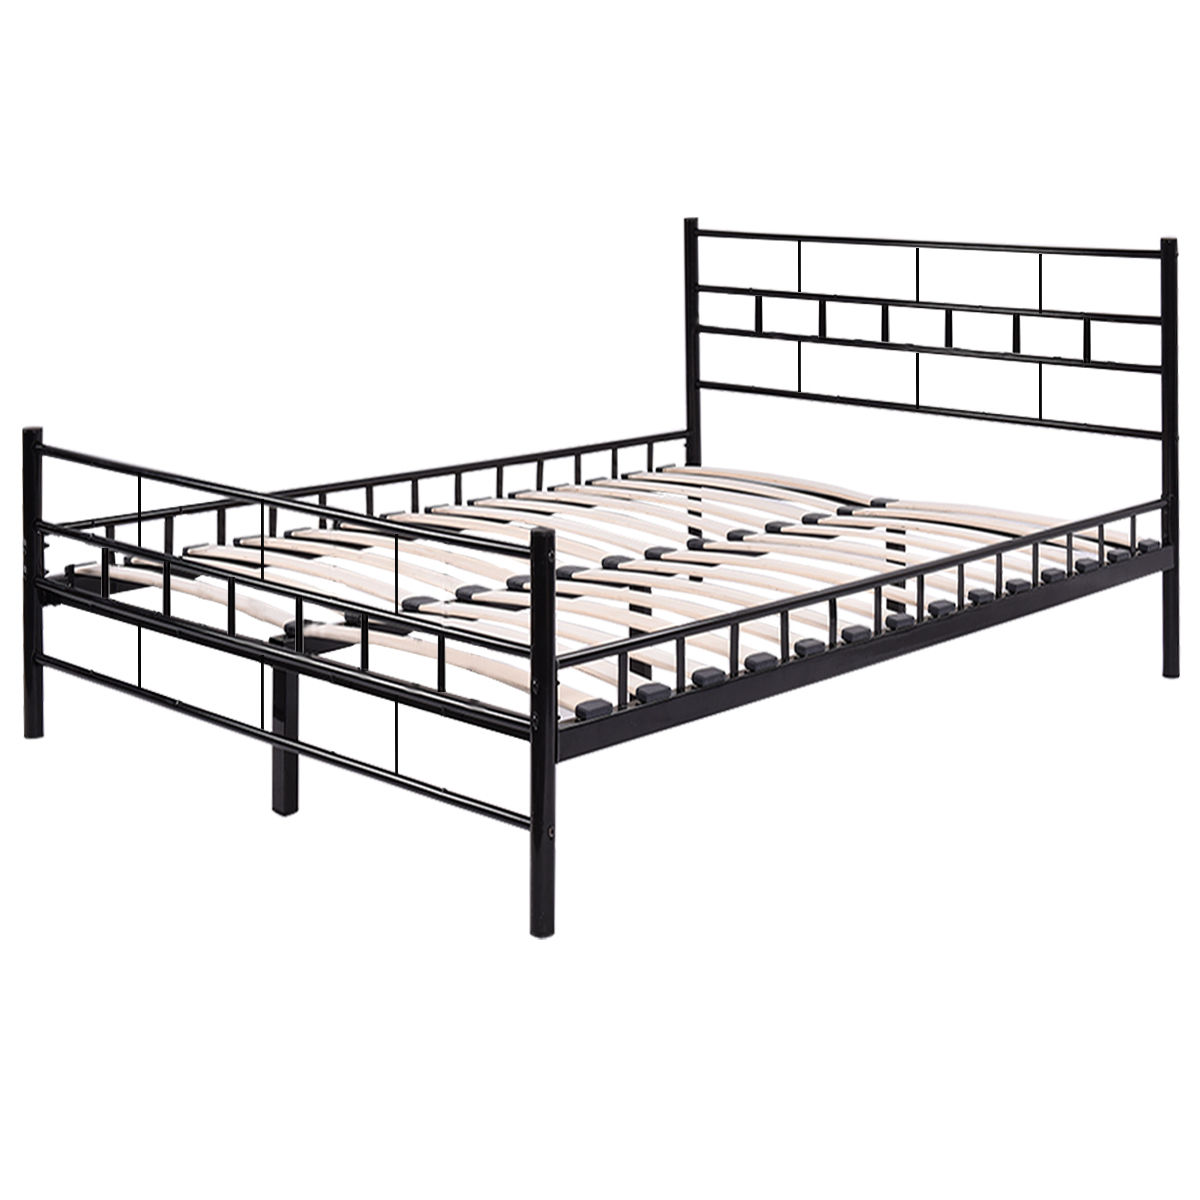 giantex black twin size wood slat steel bed frame platform with headboard footboard modern. Black Bedroom Furniture Sets. Home Design Ideas